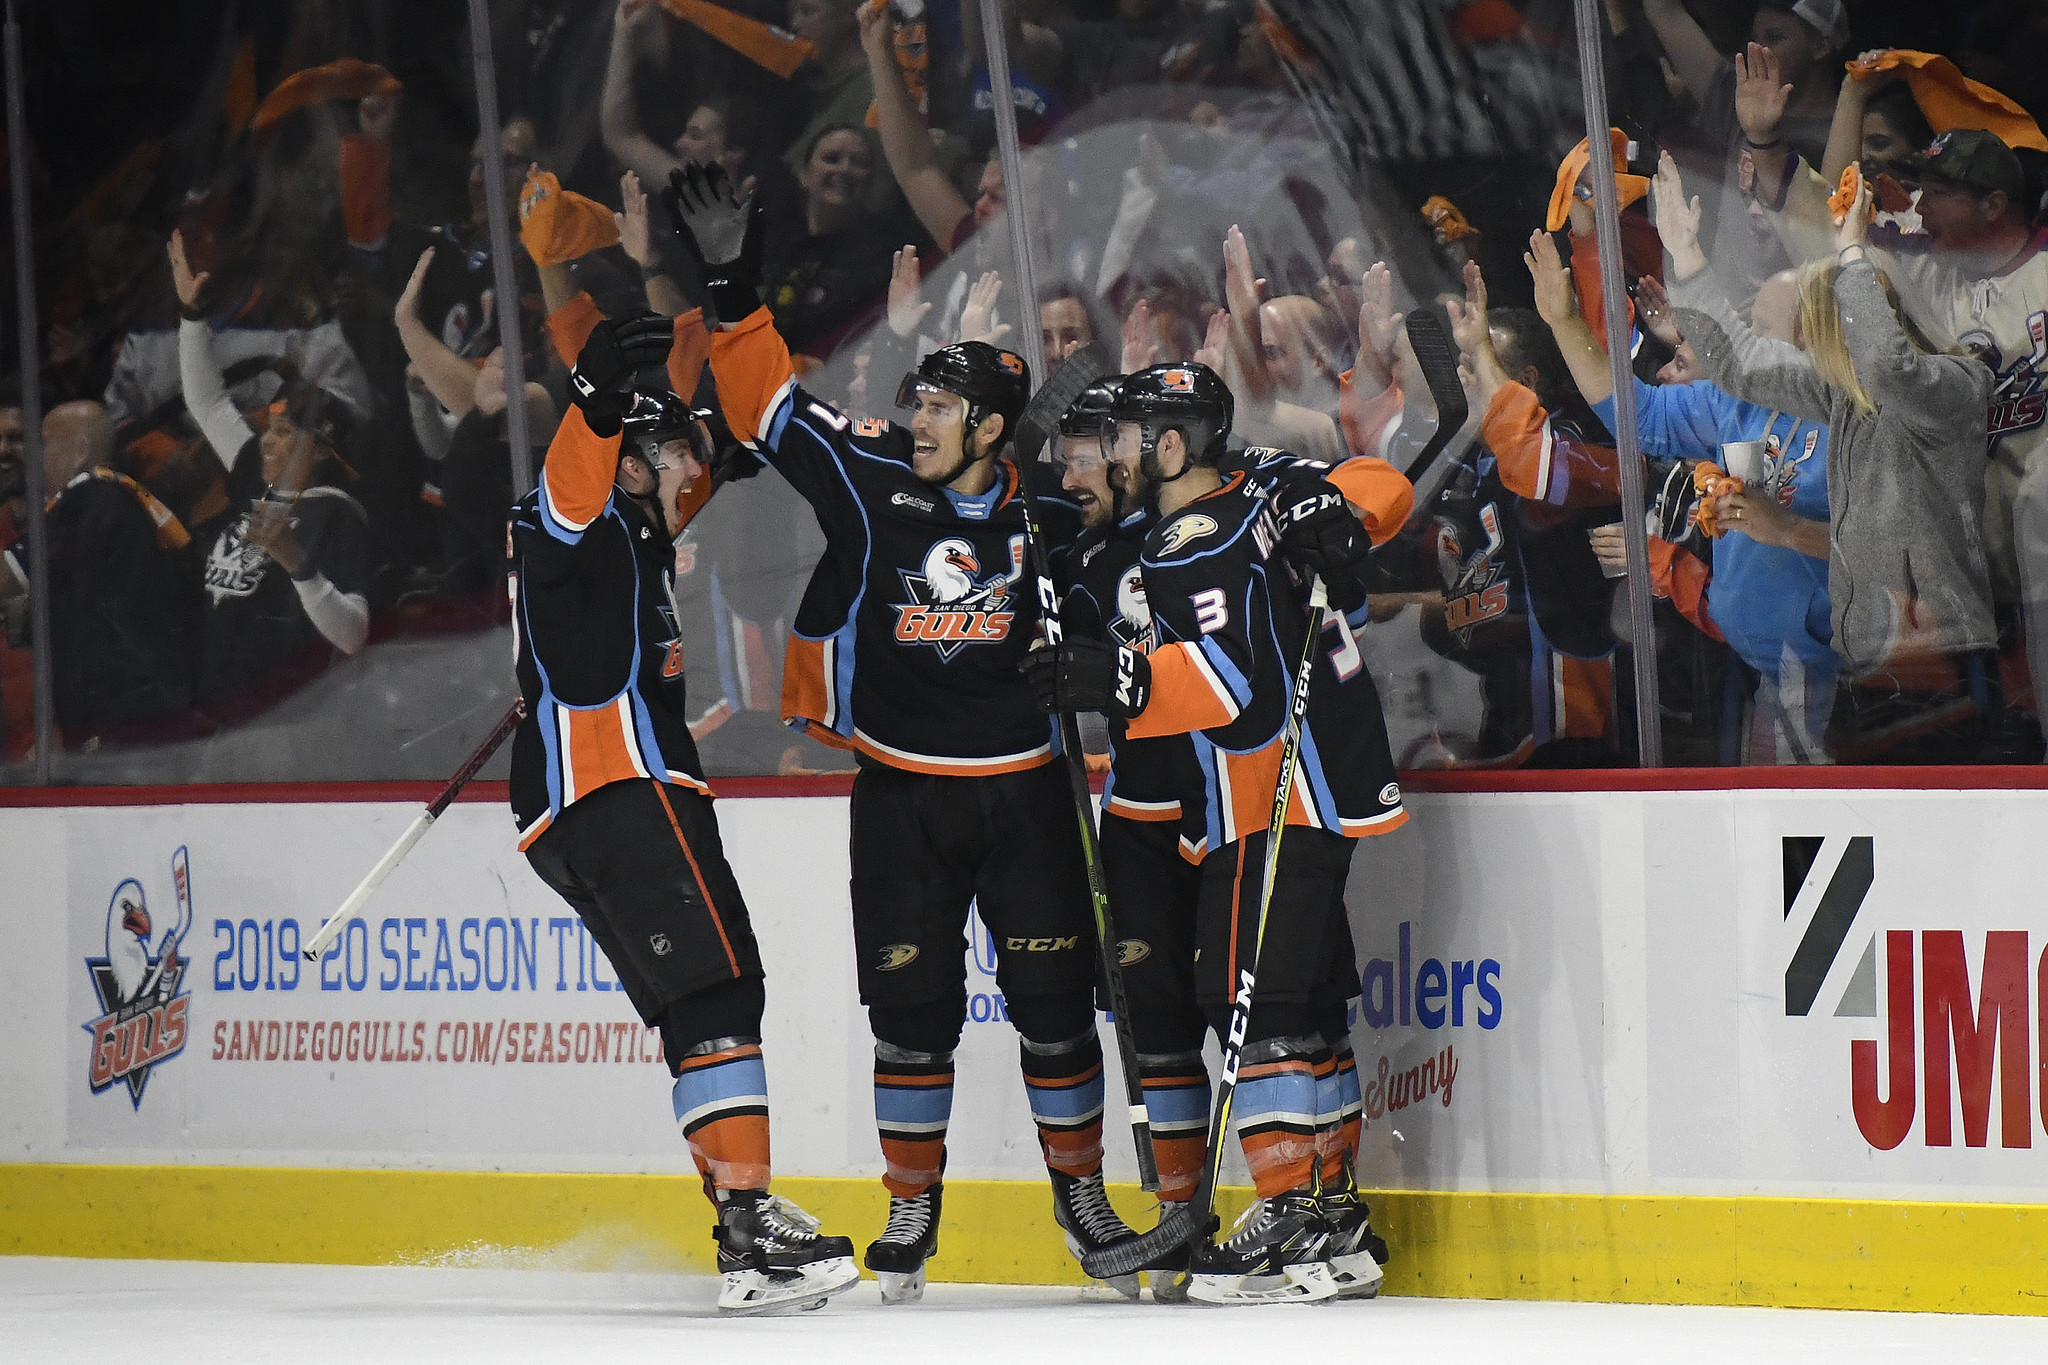 San Diego Gulls vs Bakersfield Condors: Game 6 – Defend The Nest